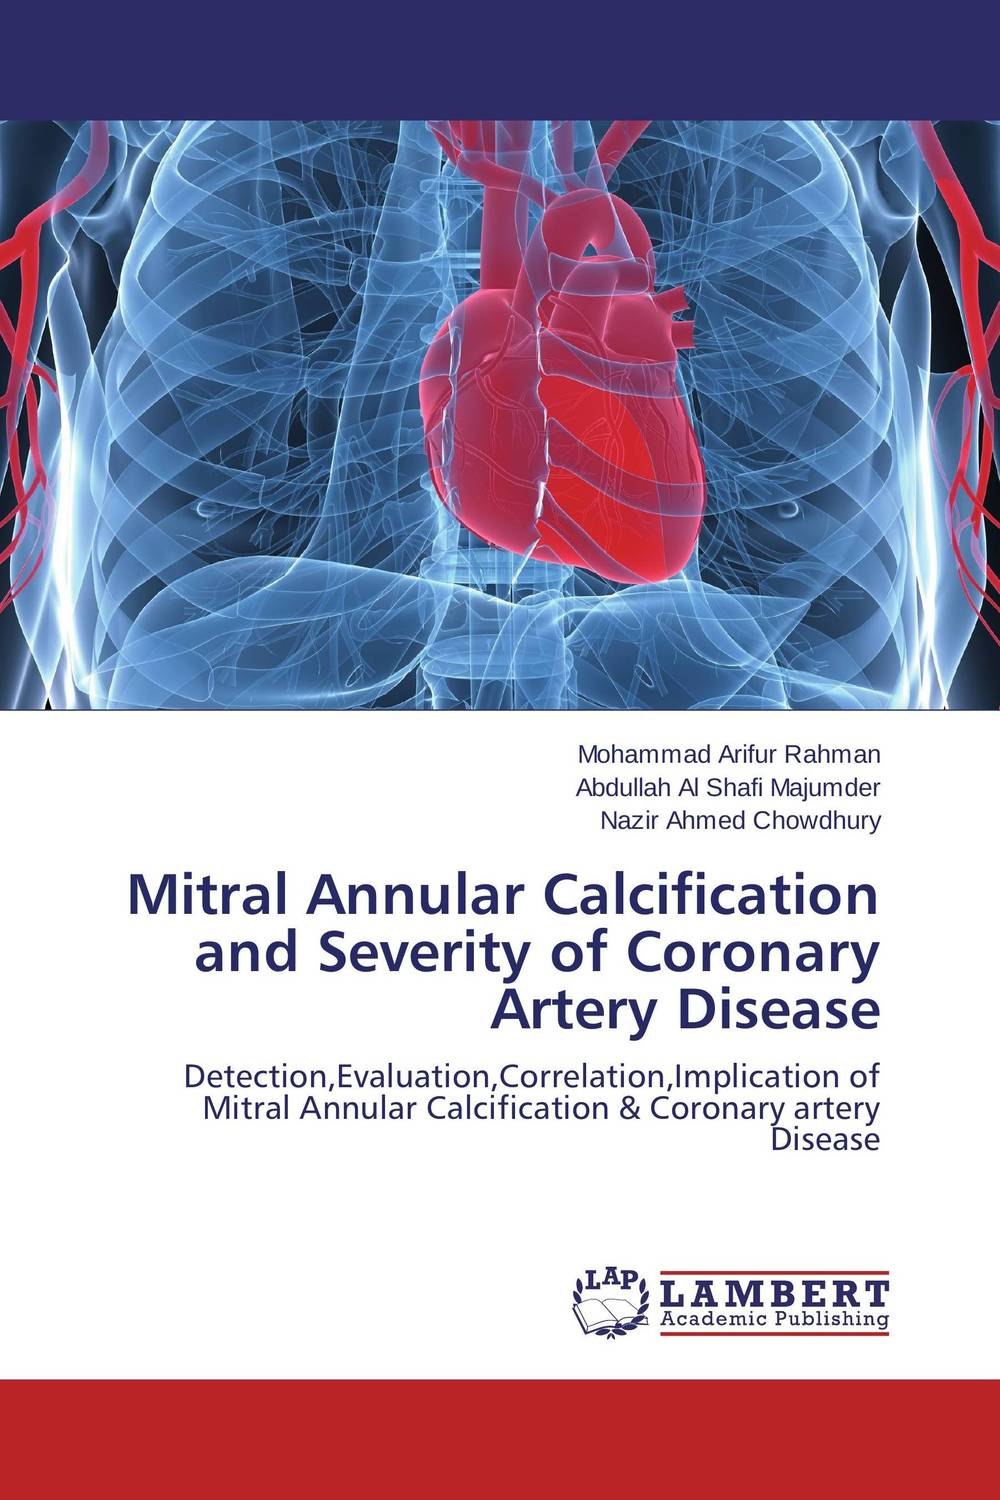 Mitral Annular Calcification and Severity of Coronary Artery Disease patricia schlorke adult women and coronary heart disease